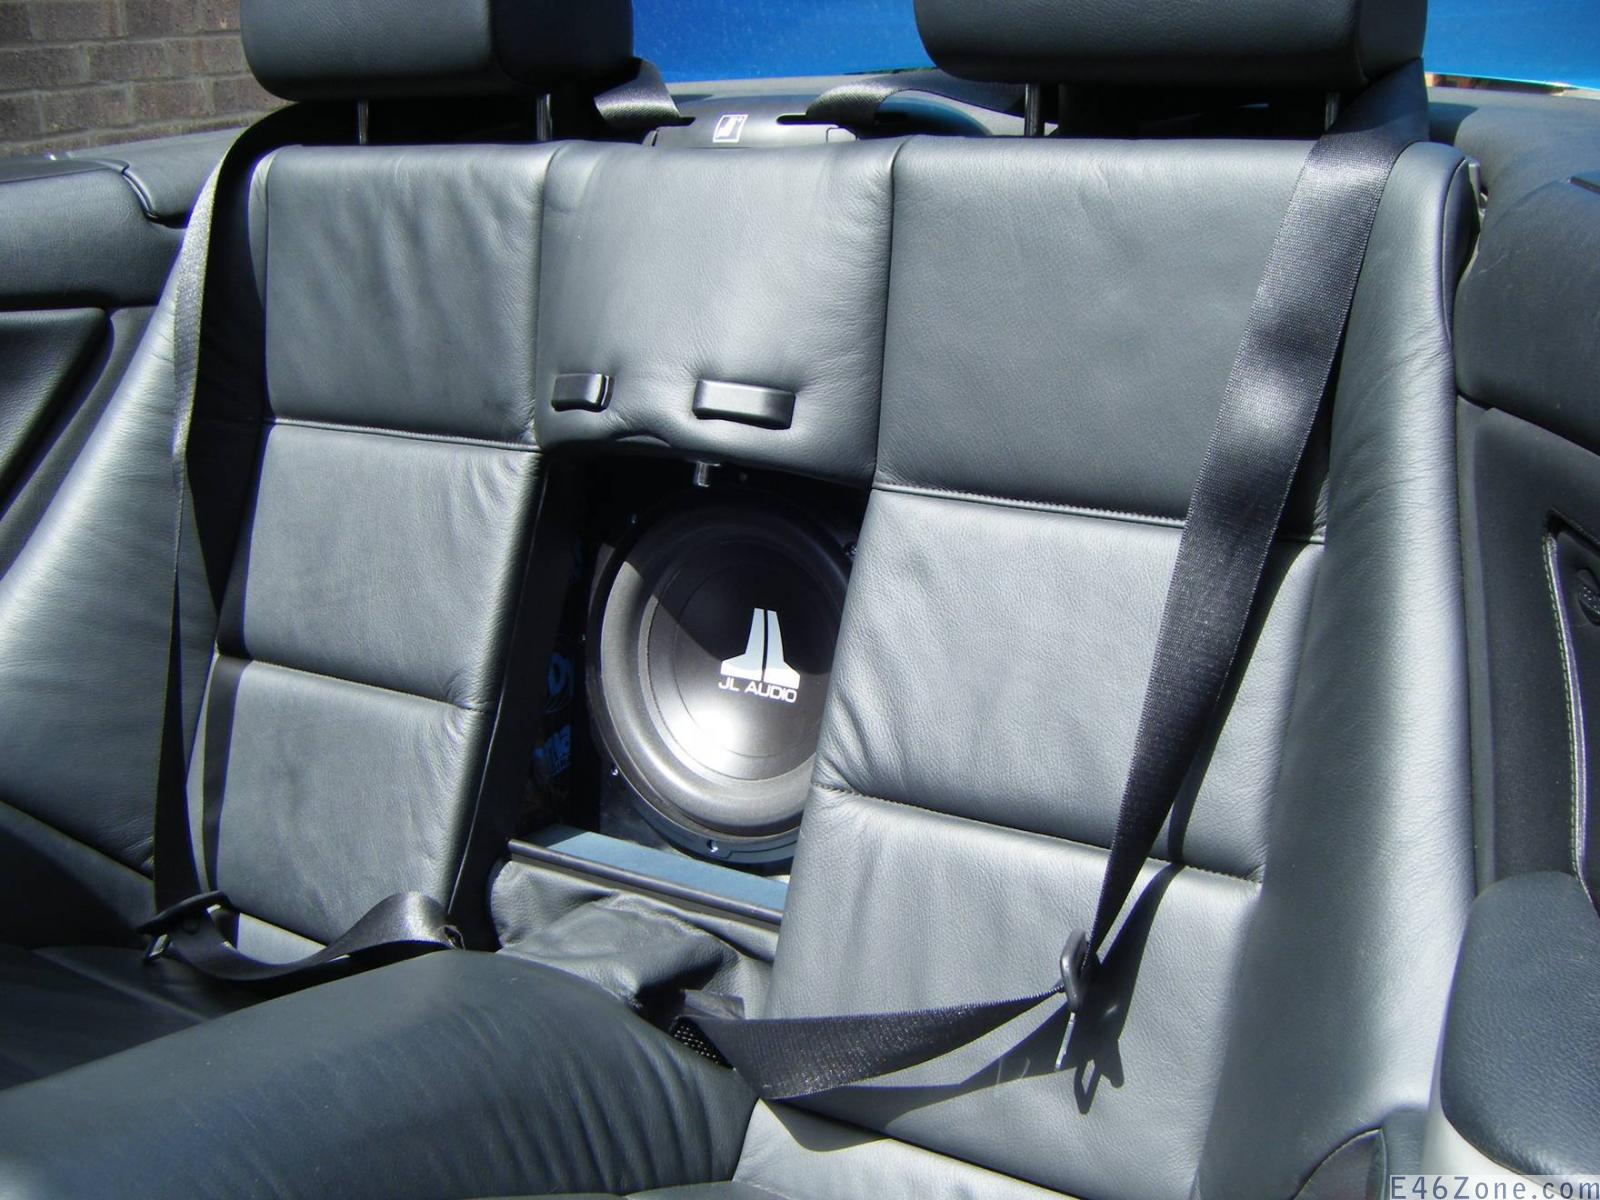 Convertible Sub Install Done With Pics Ice E46 Zone Subwoofer Wiring Diagram Gallery 3854 430 152221